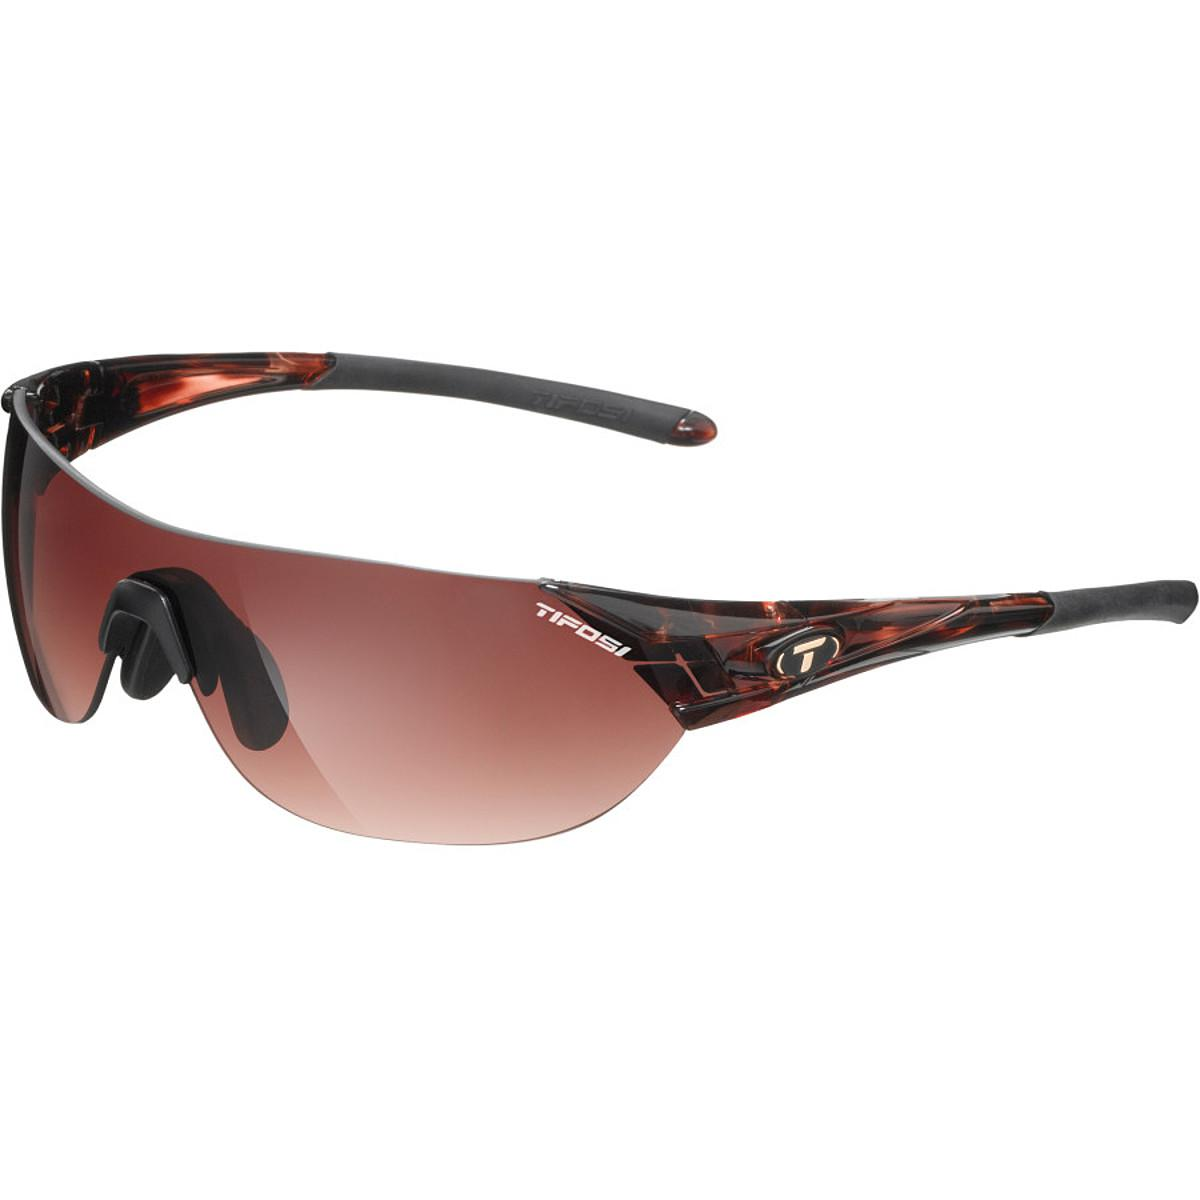 2473dee4a1 Lyst - Tifosi Optics Podium S Interchangeable Sunglasses in Brown ...